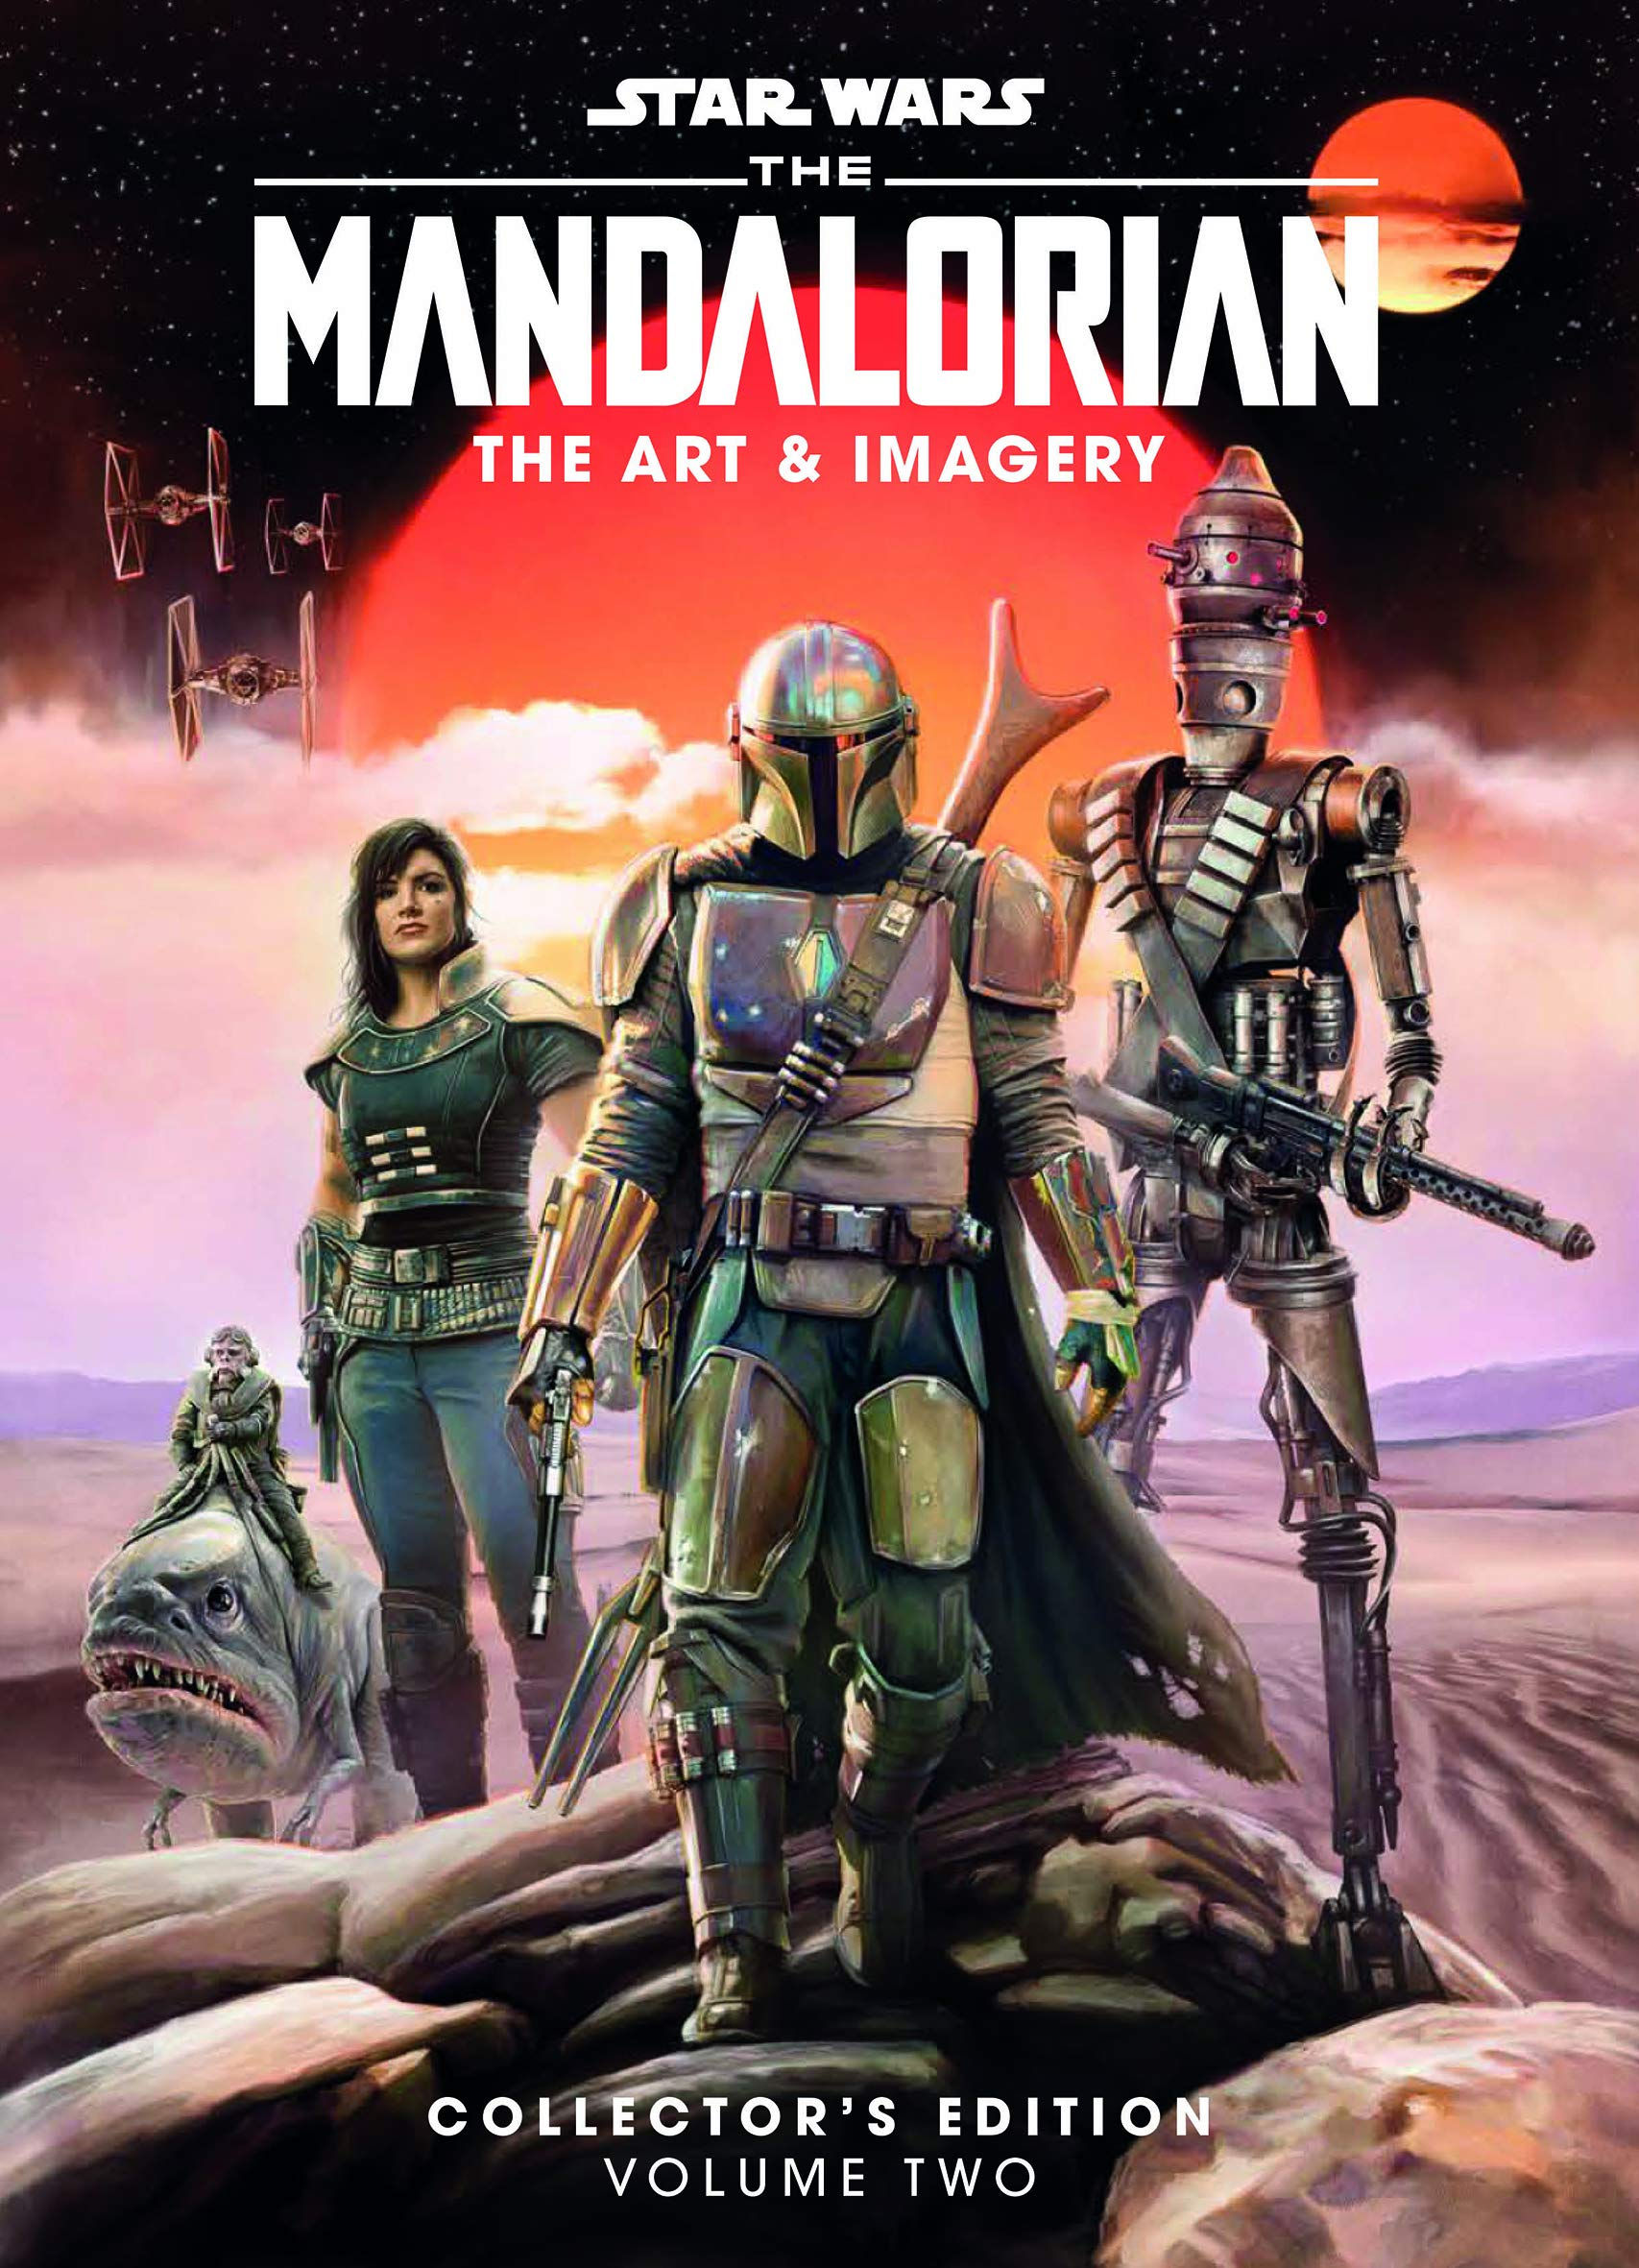 Amazon Com Star Wars The Mandalorian The Art Imagery Collector S Edition Vol 2 Star Wars Mandalorian 9781787735750 Titan Books